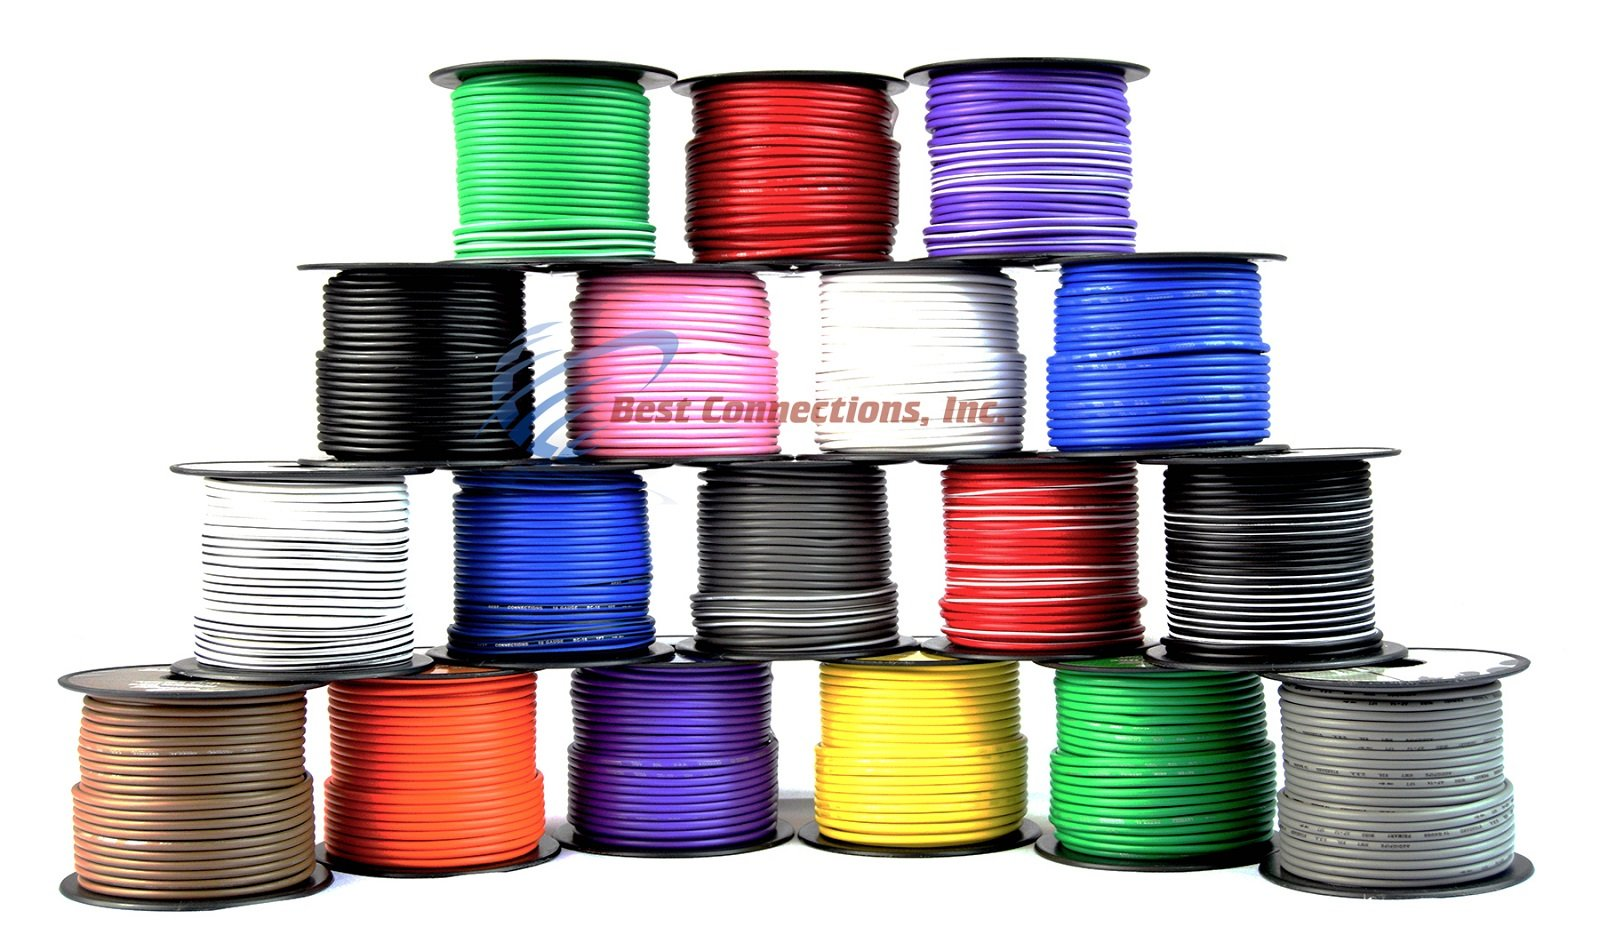 16 GA 100 FT SPOOLS PRIMARY AUTO REMOTE POWER GROUND WIRE CABLE (11 ROLLS)